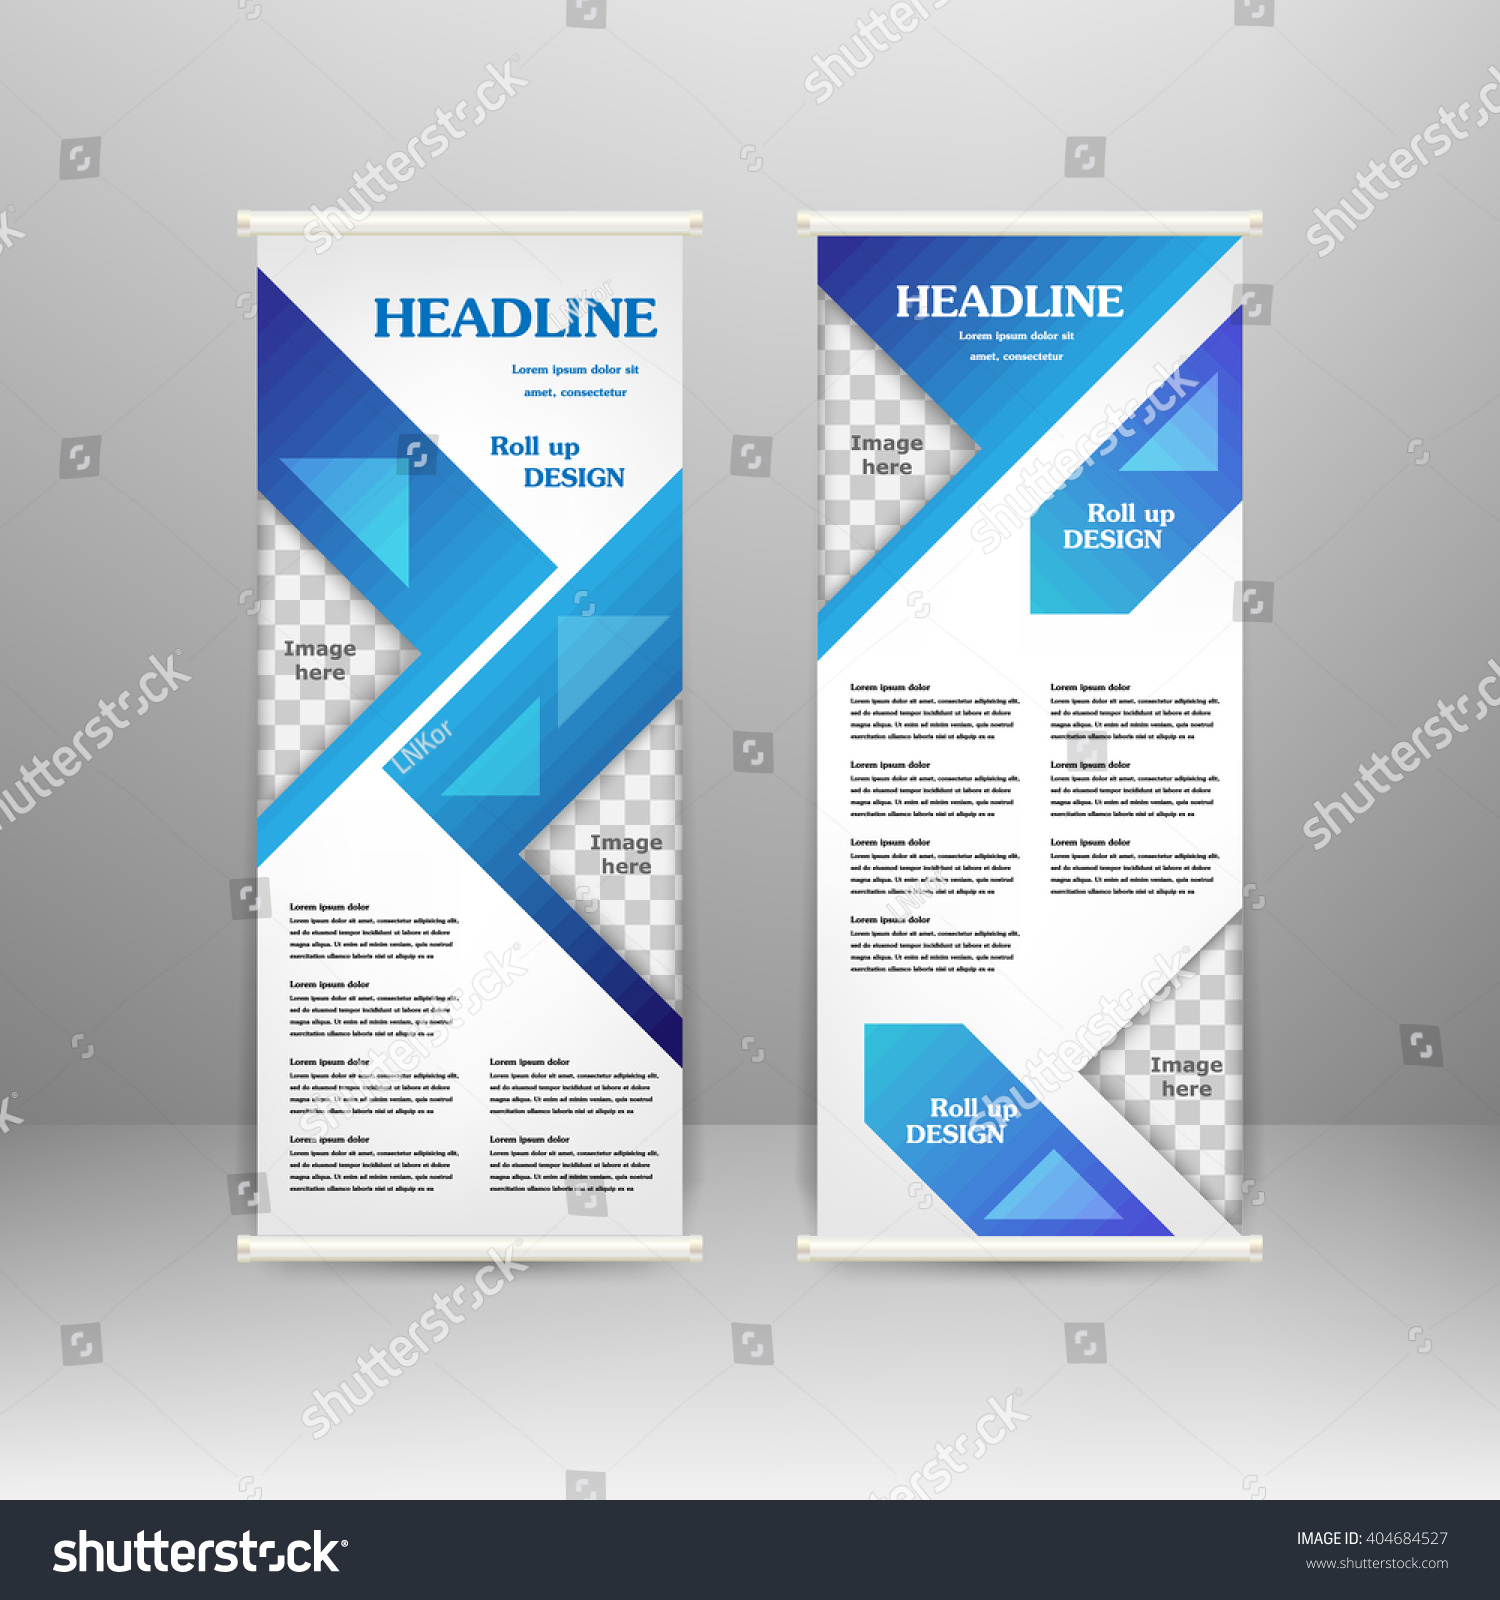 roll banner stand design advertisement poster stock vector for advertisement poster brochure presentation business